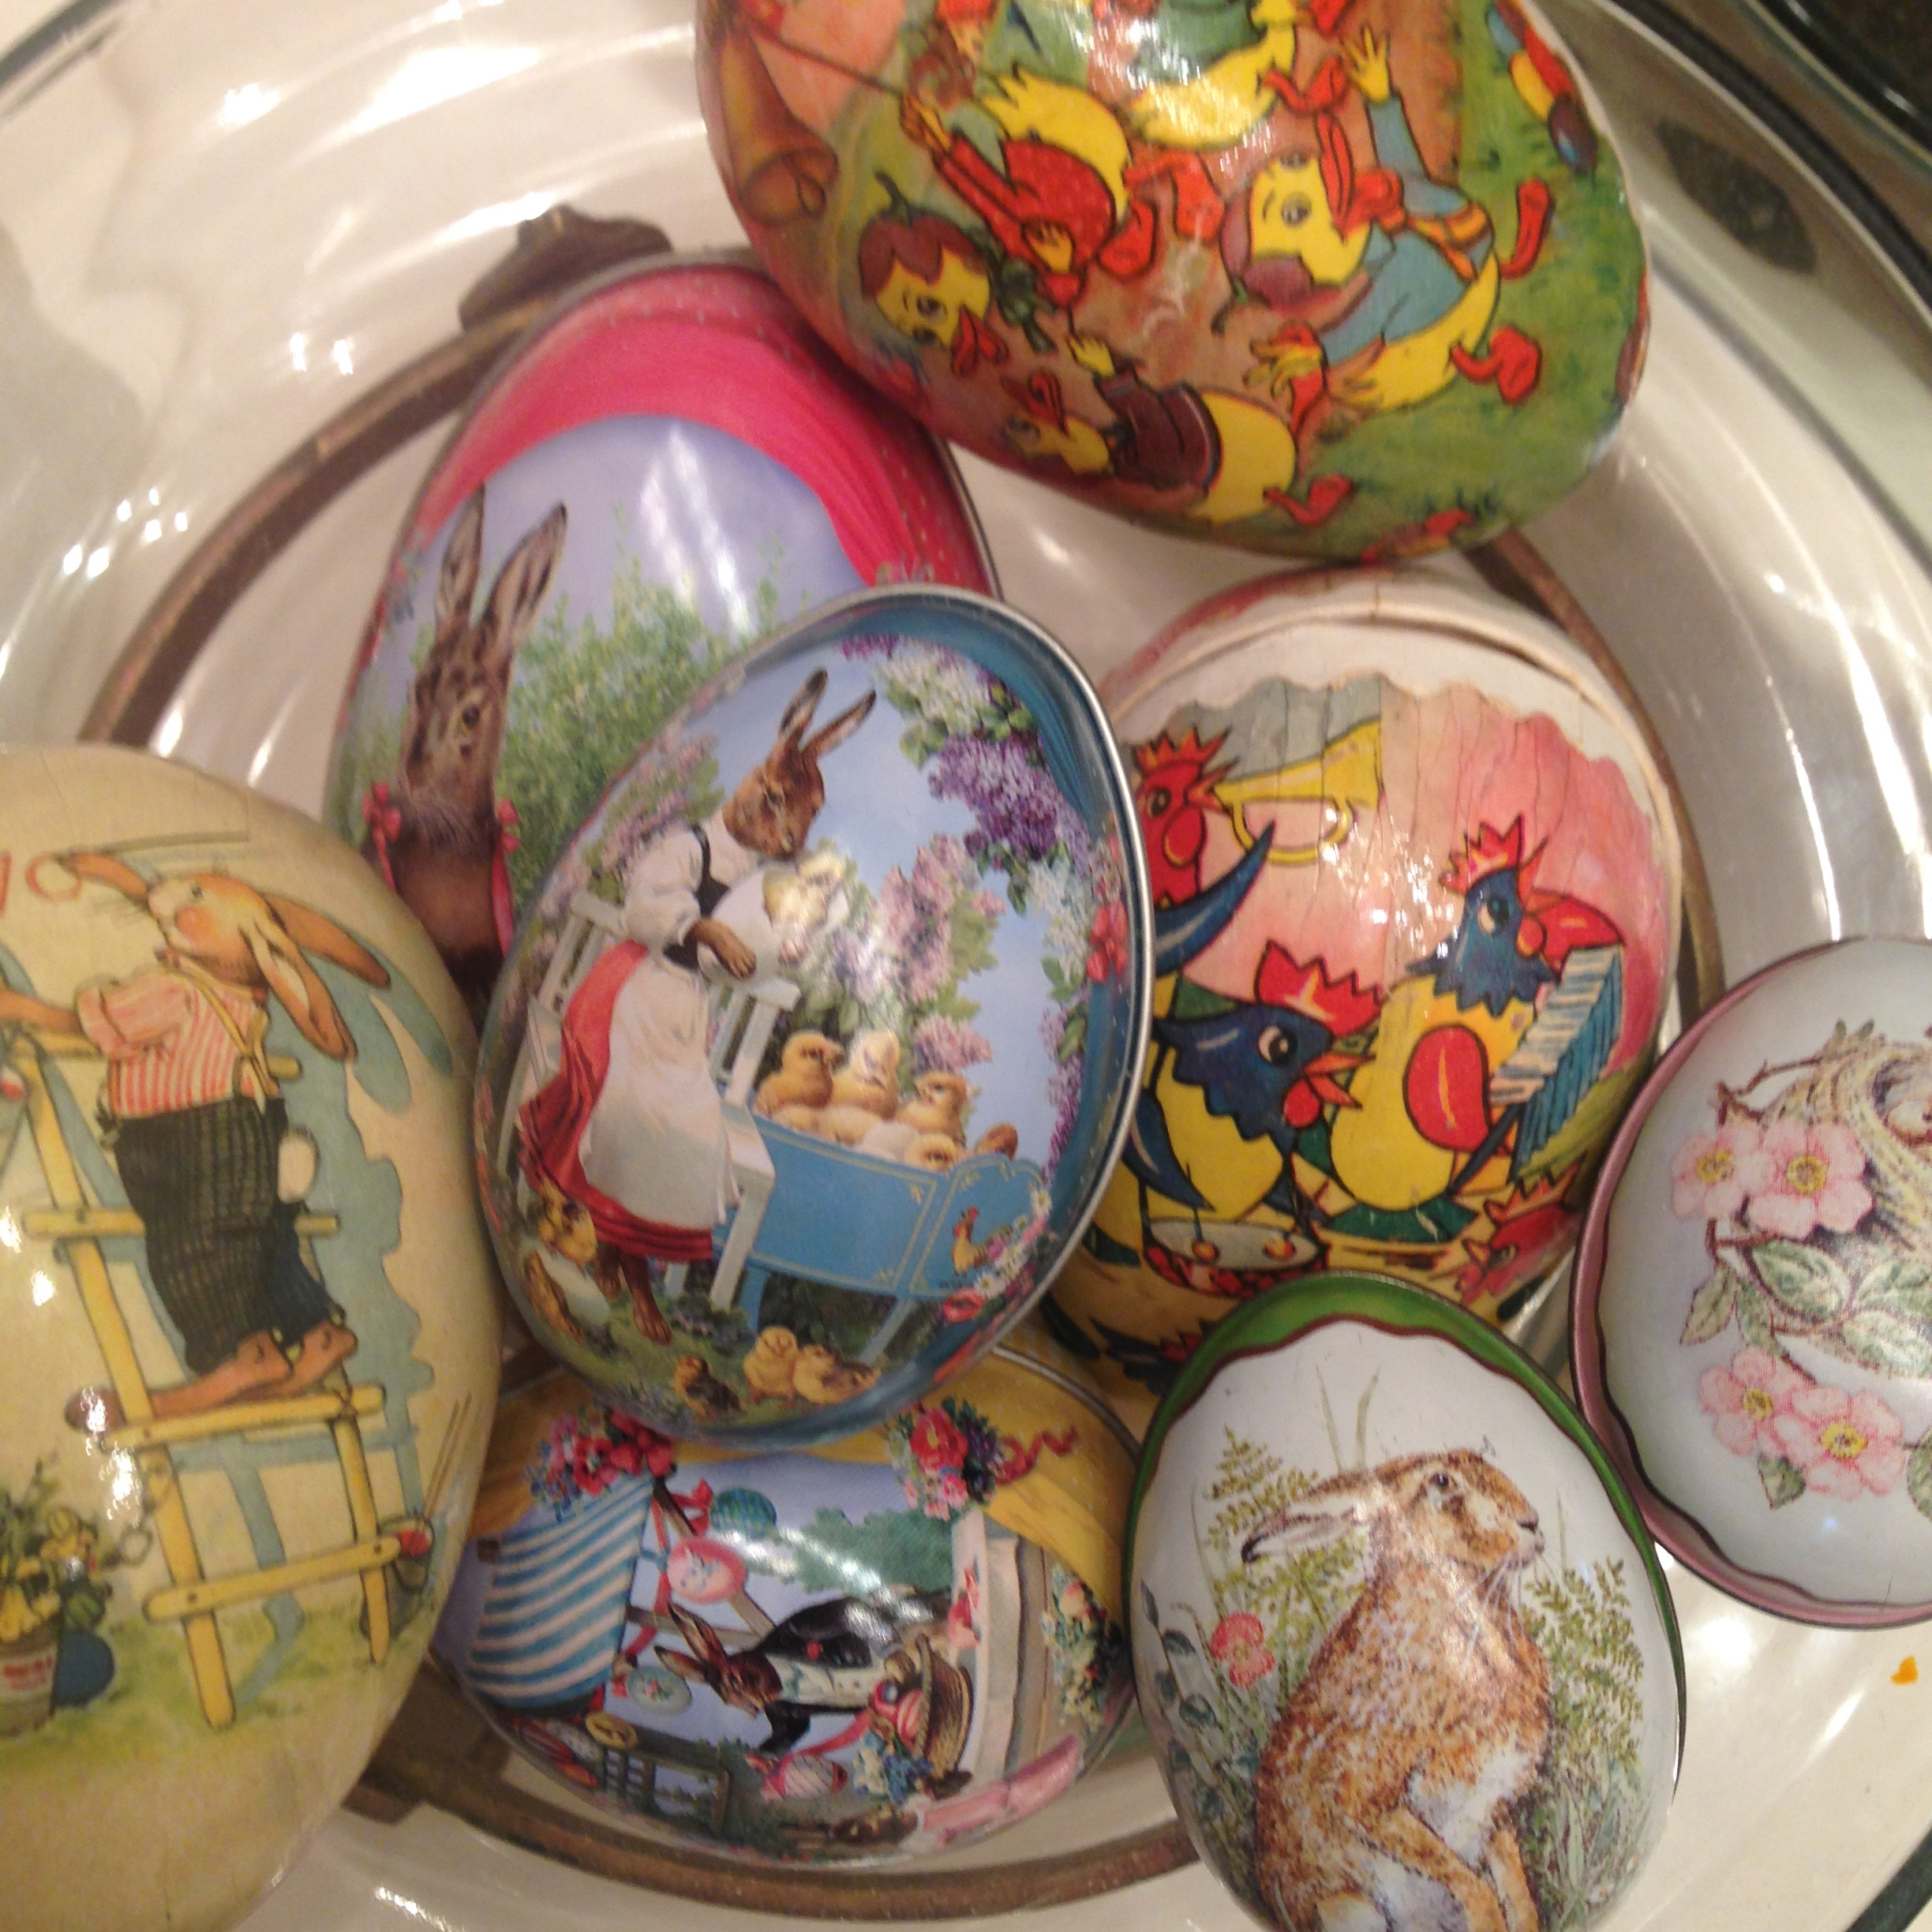 A bowl of collected Easter eggs